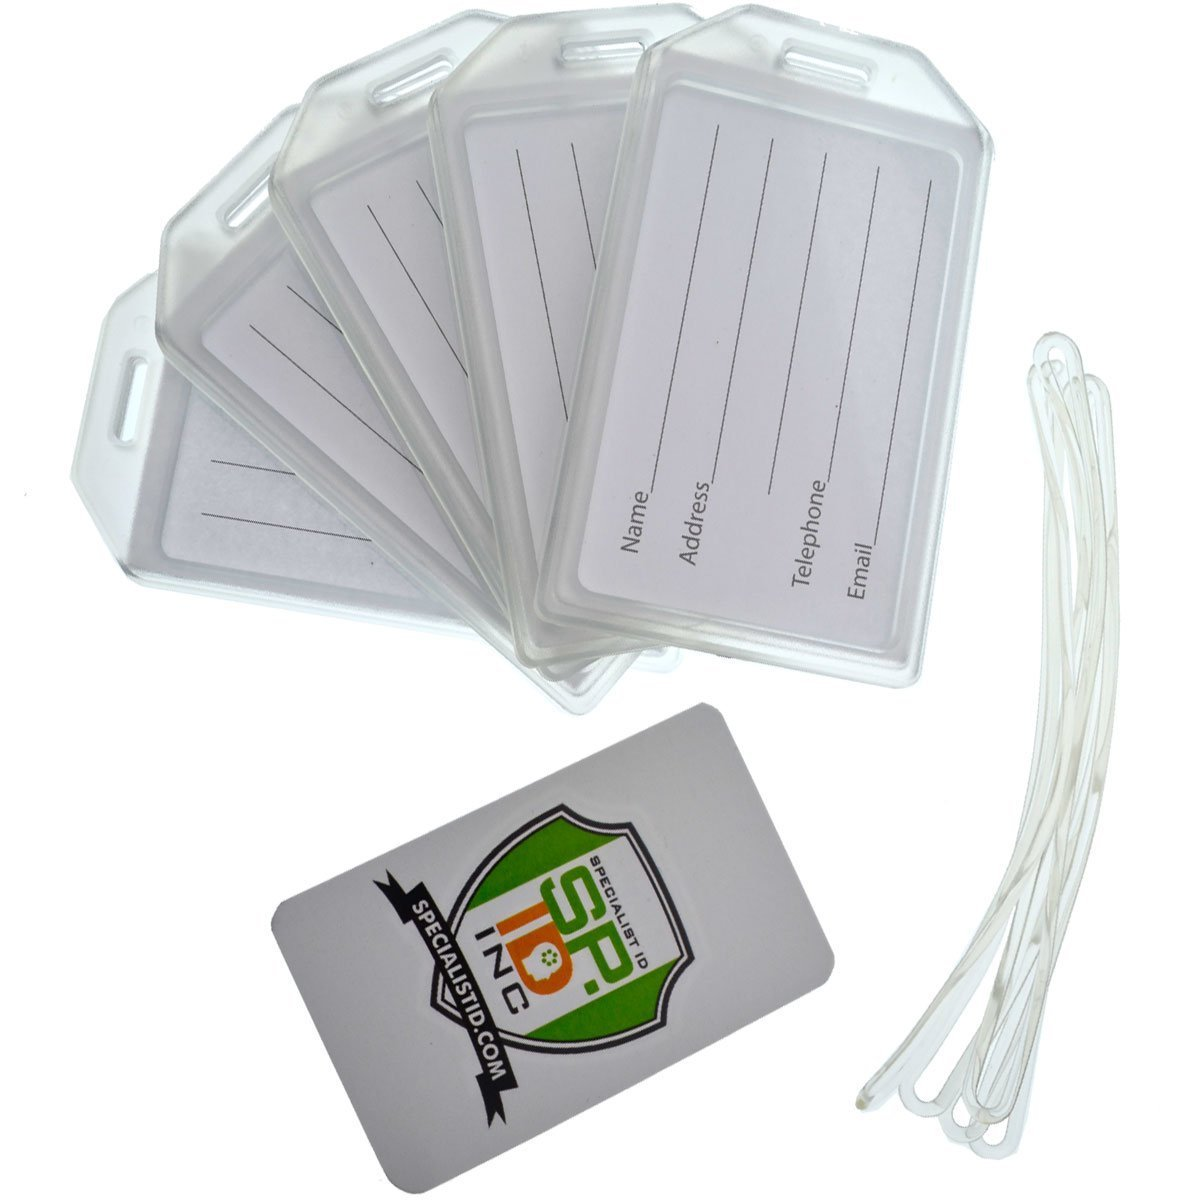 b19908540458 Details about 25 Pack - Heavy Duty Rigid Airline Luggage ID Bag Tag Holders  with Plastic Loops